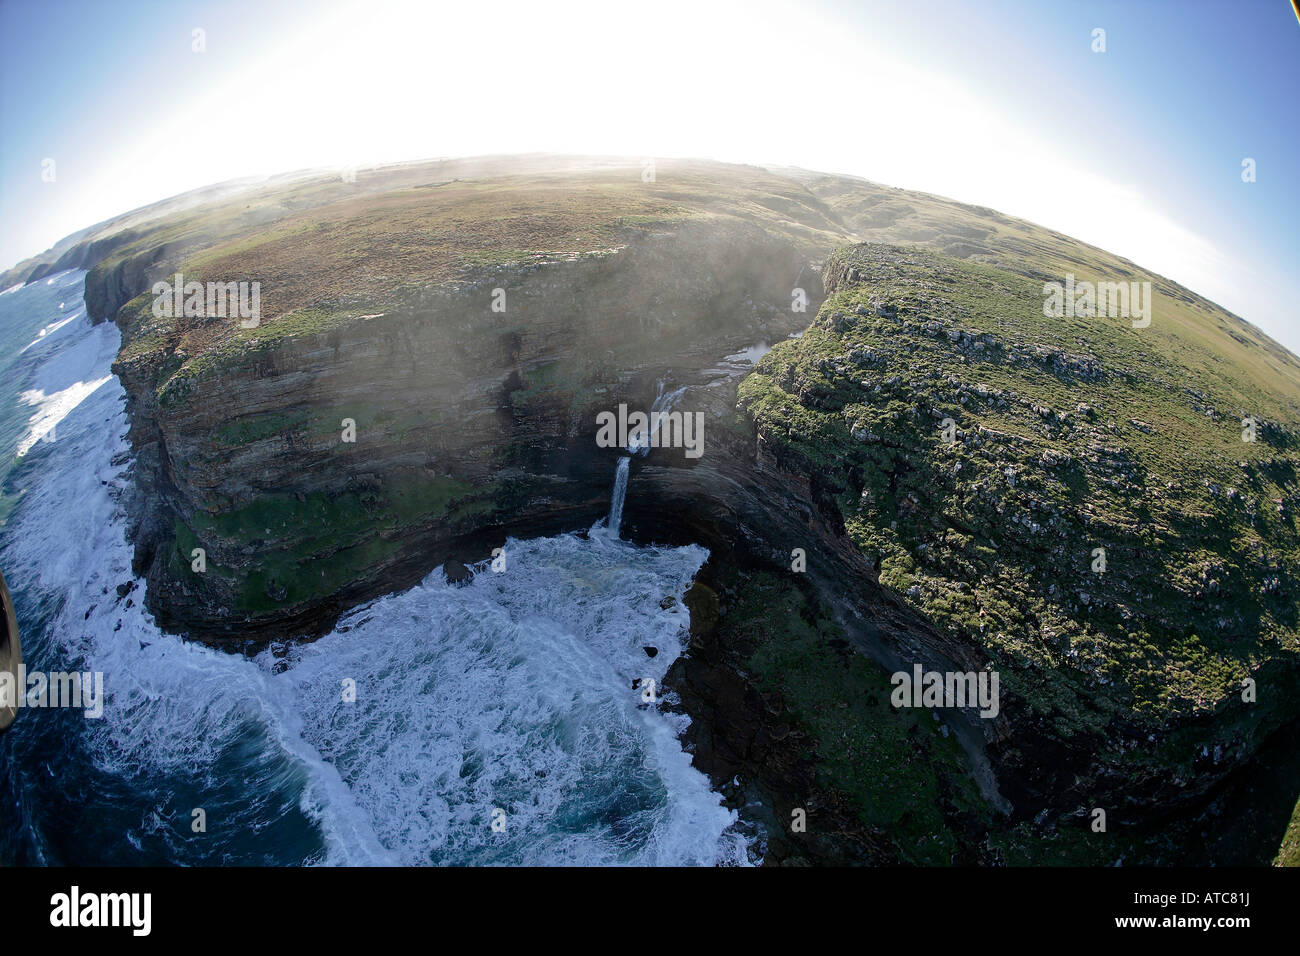 aerial view of sandstone coastline of Wild Coast Transkei Southeast Africa Indian Ocean Mozambique - Stock Image